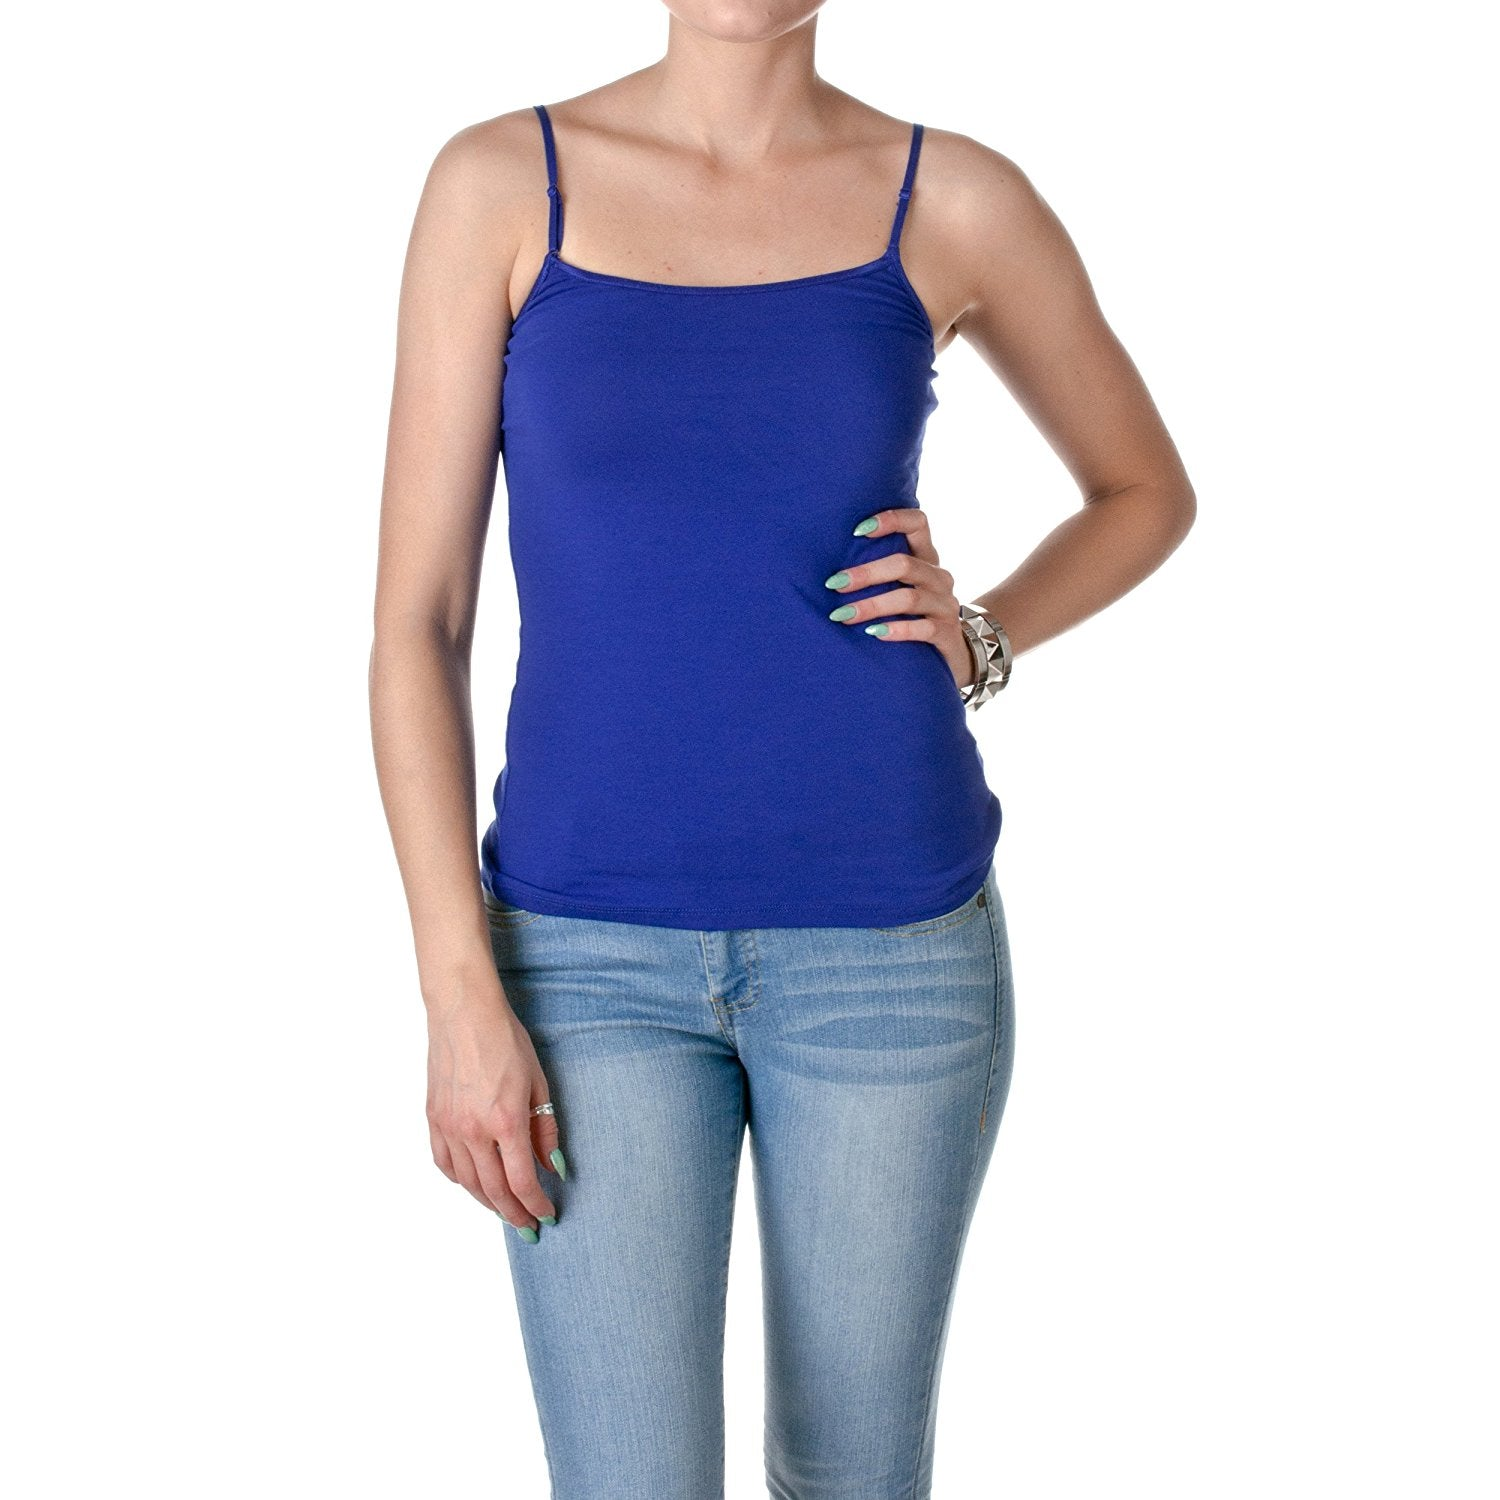 Hollywood Star Fashion Casual Basic Women's Semi-Crop Camisole Cami Tank Top With Adjustable Straps